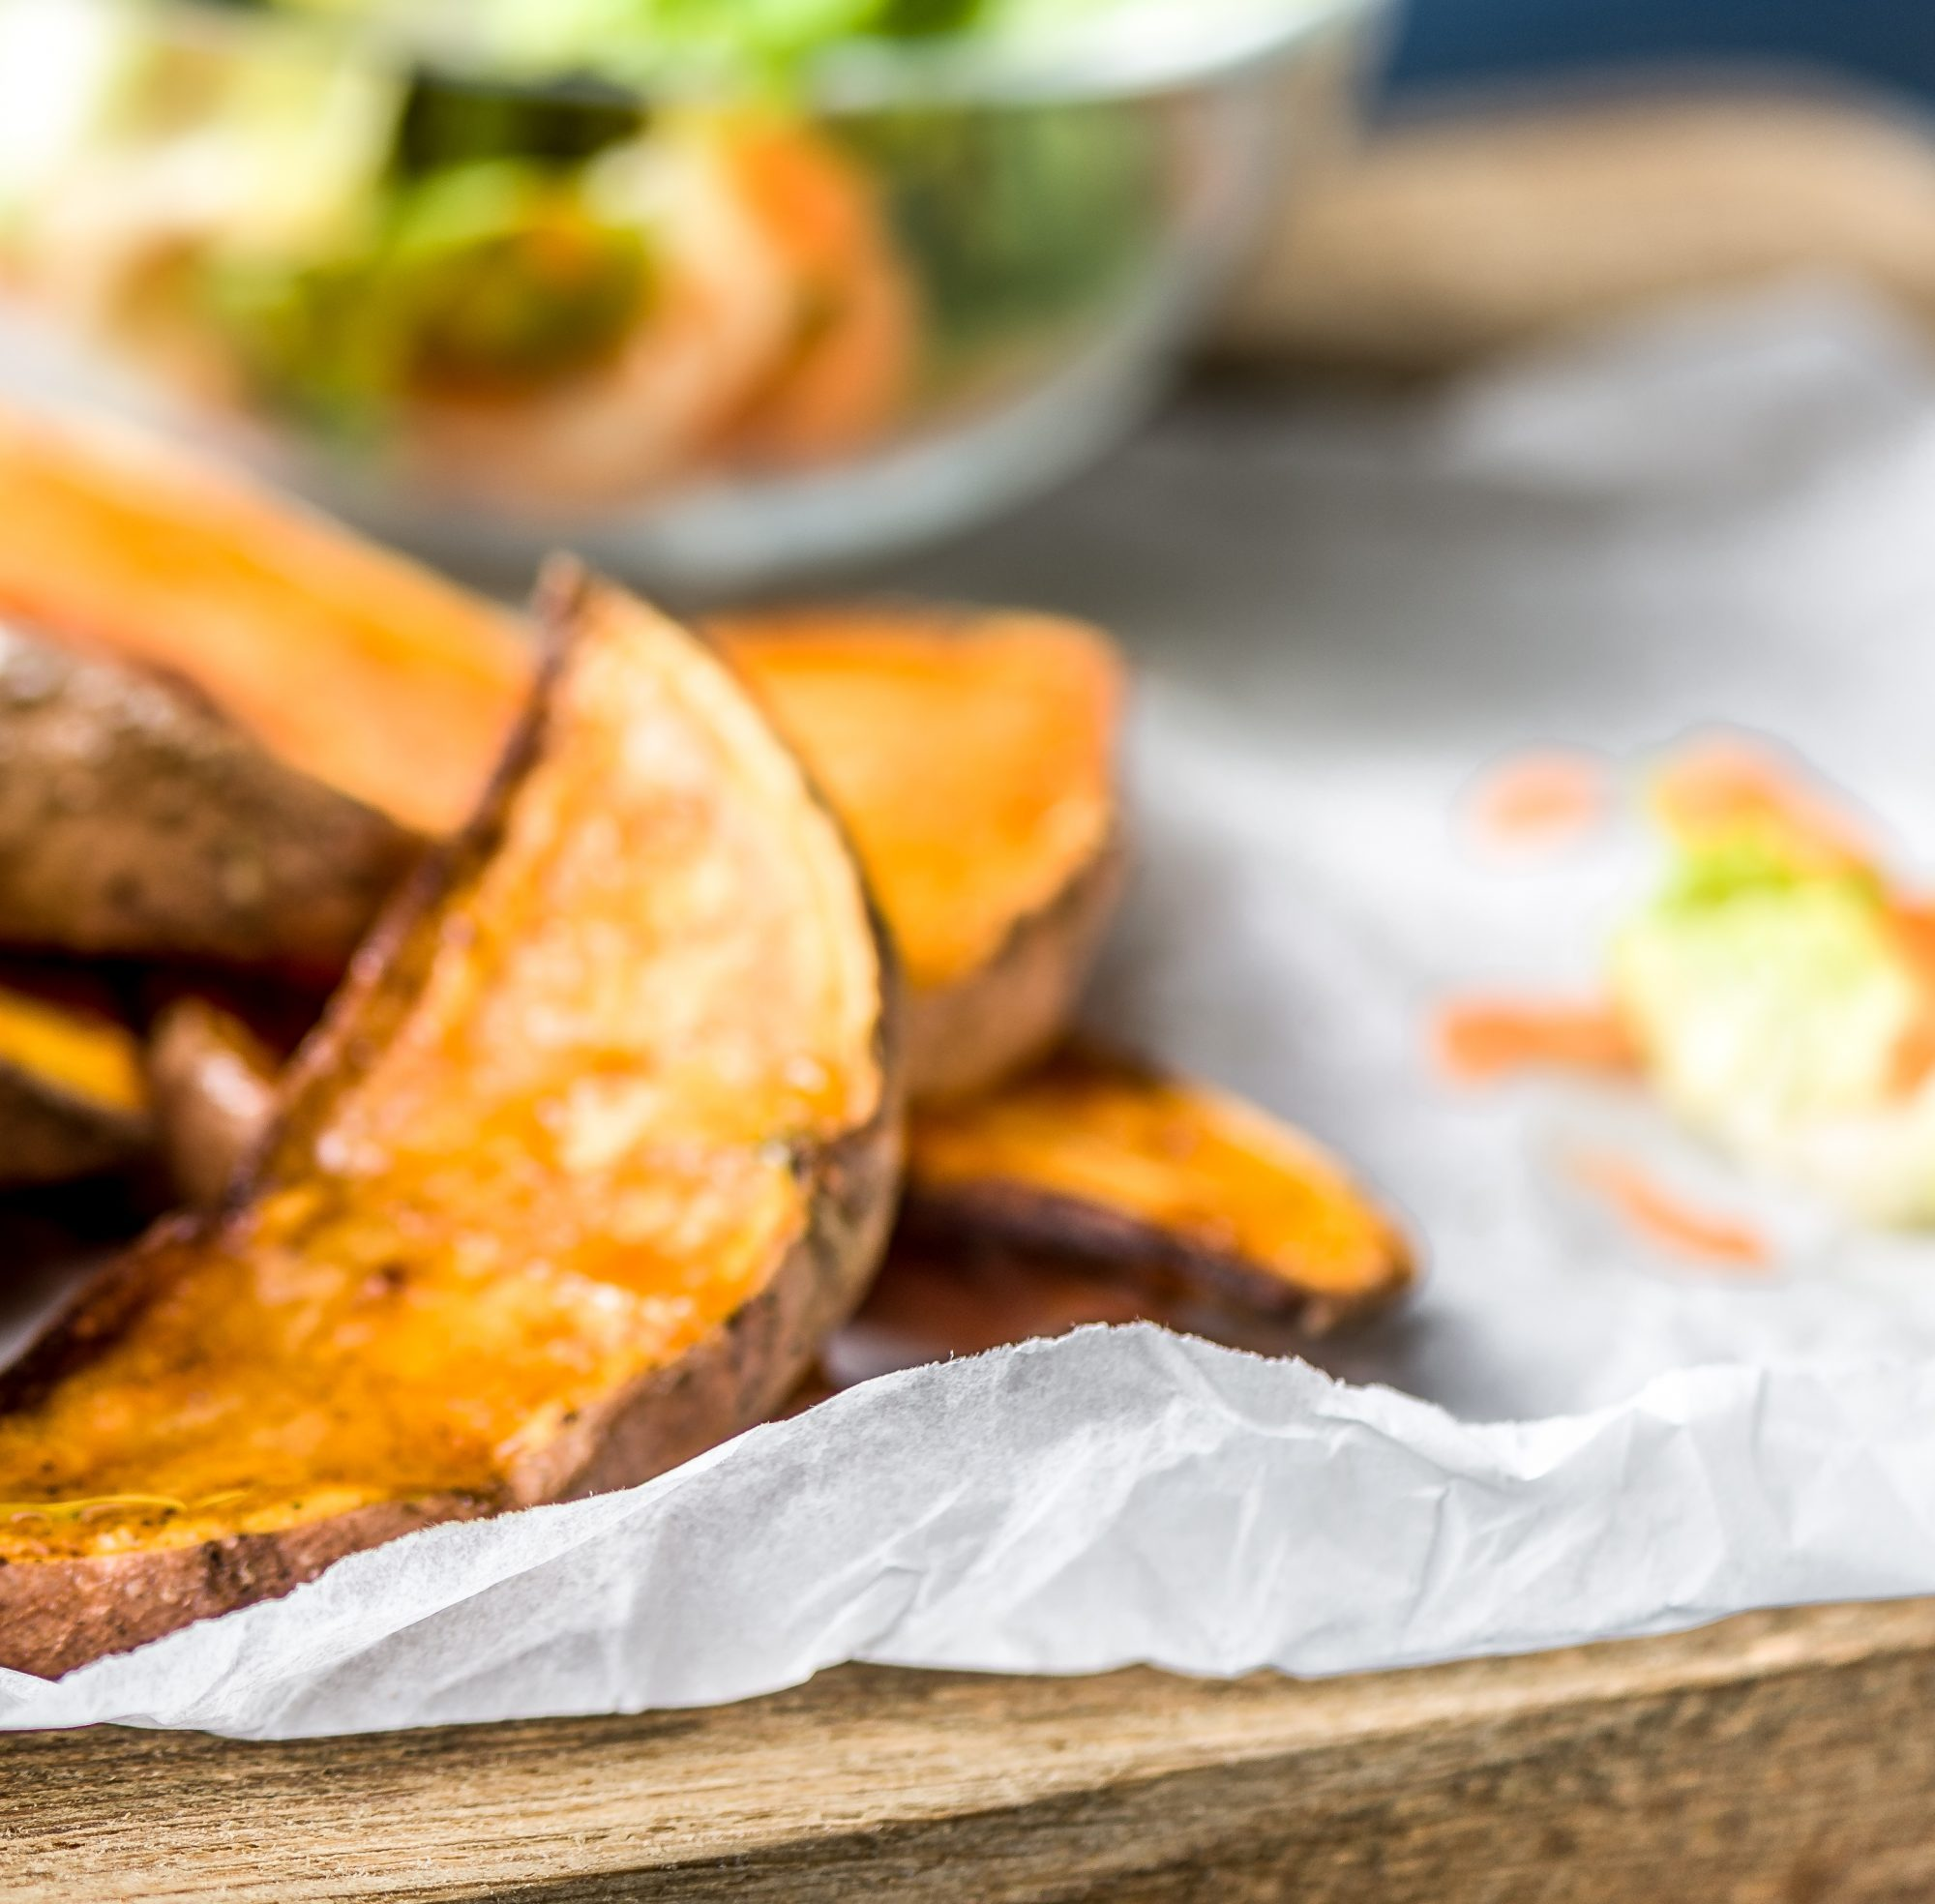 Why Aren't You Grilling Your Sweet Potatoes?